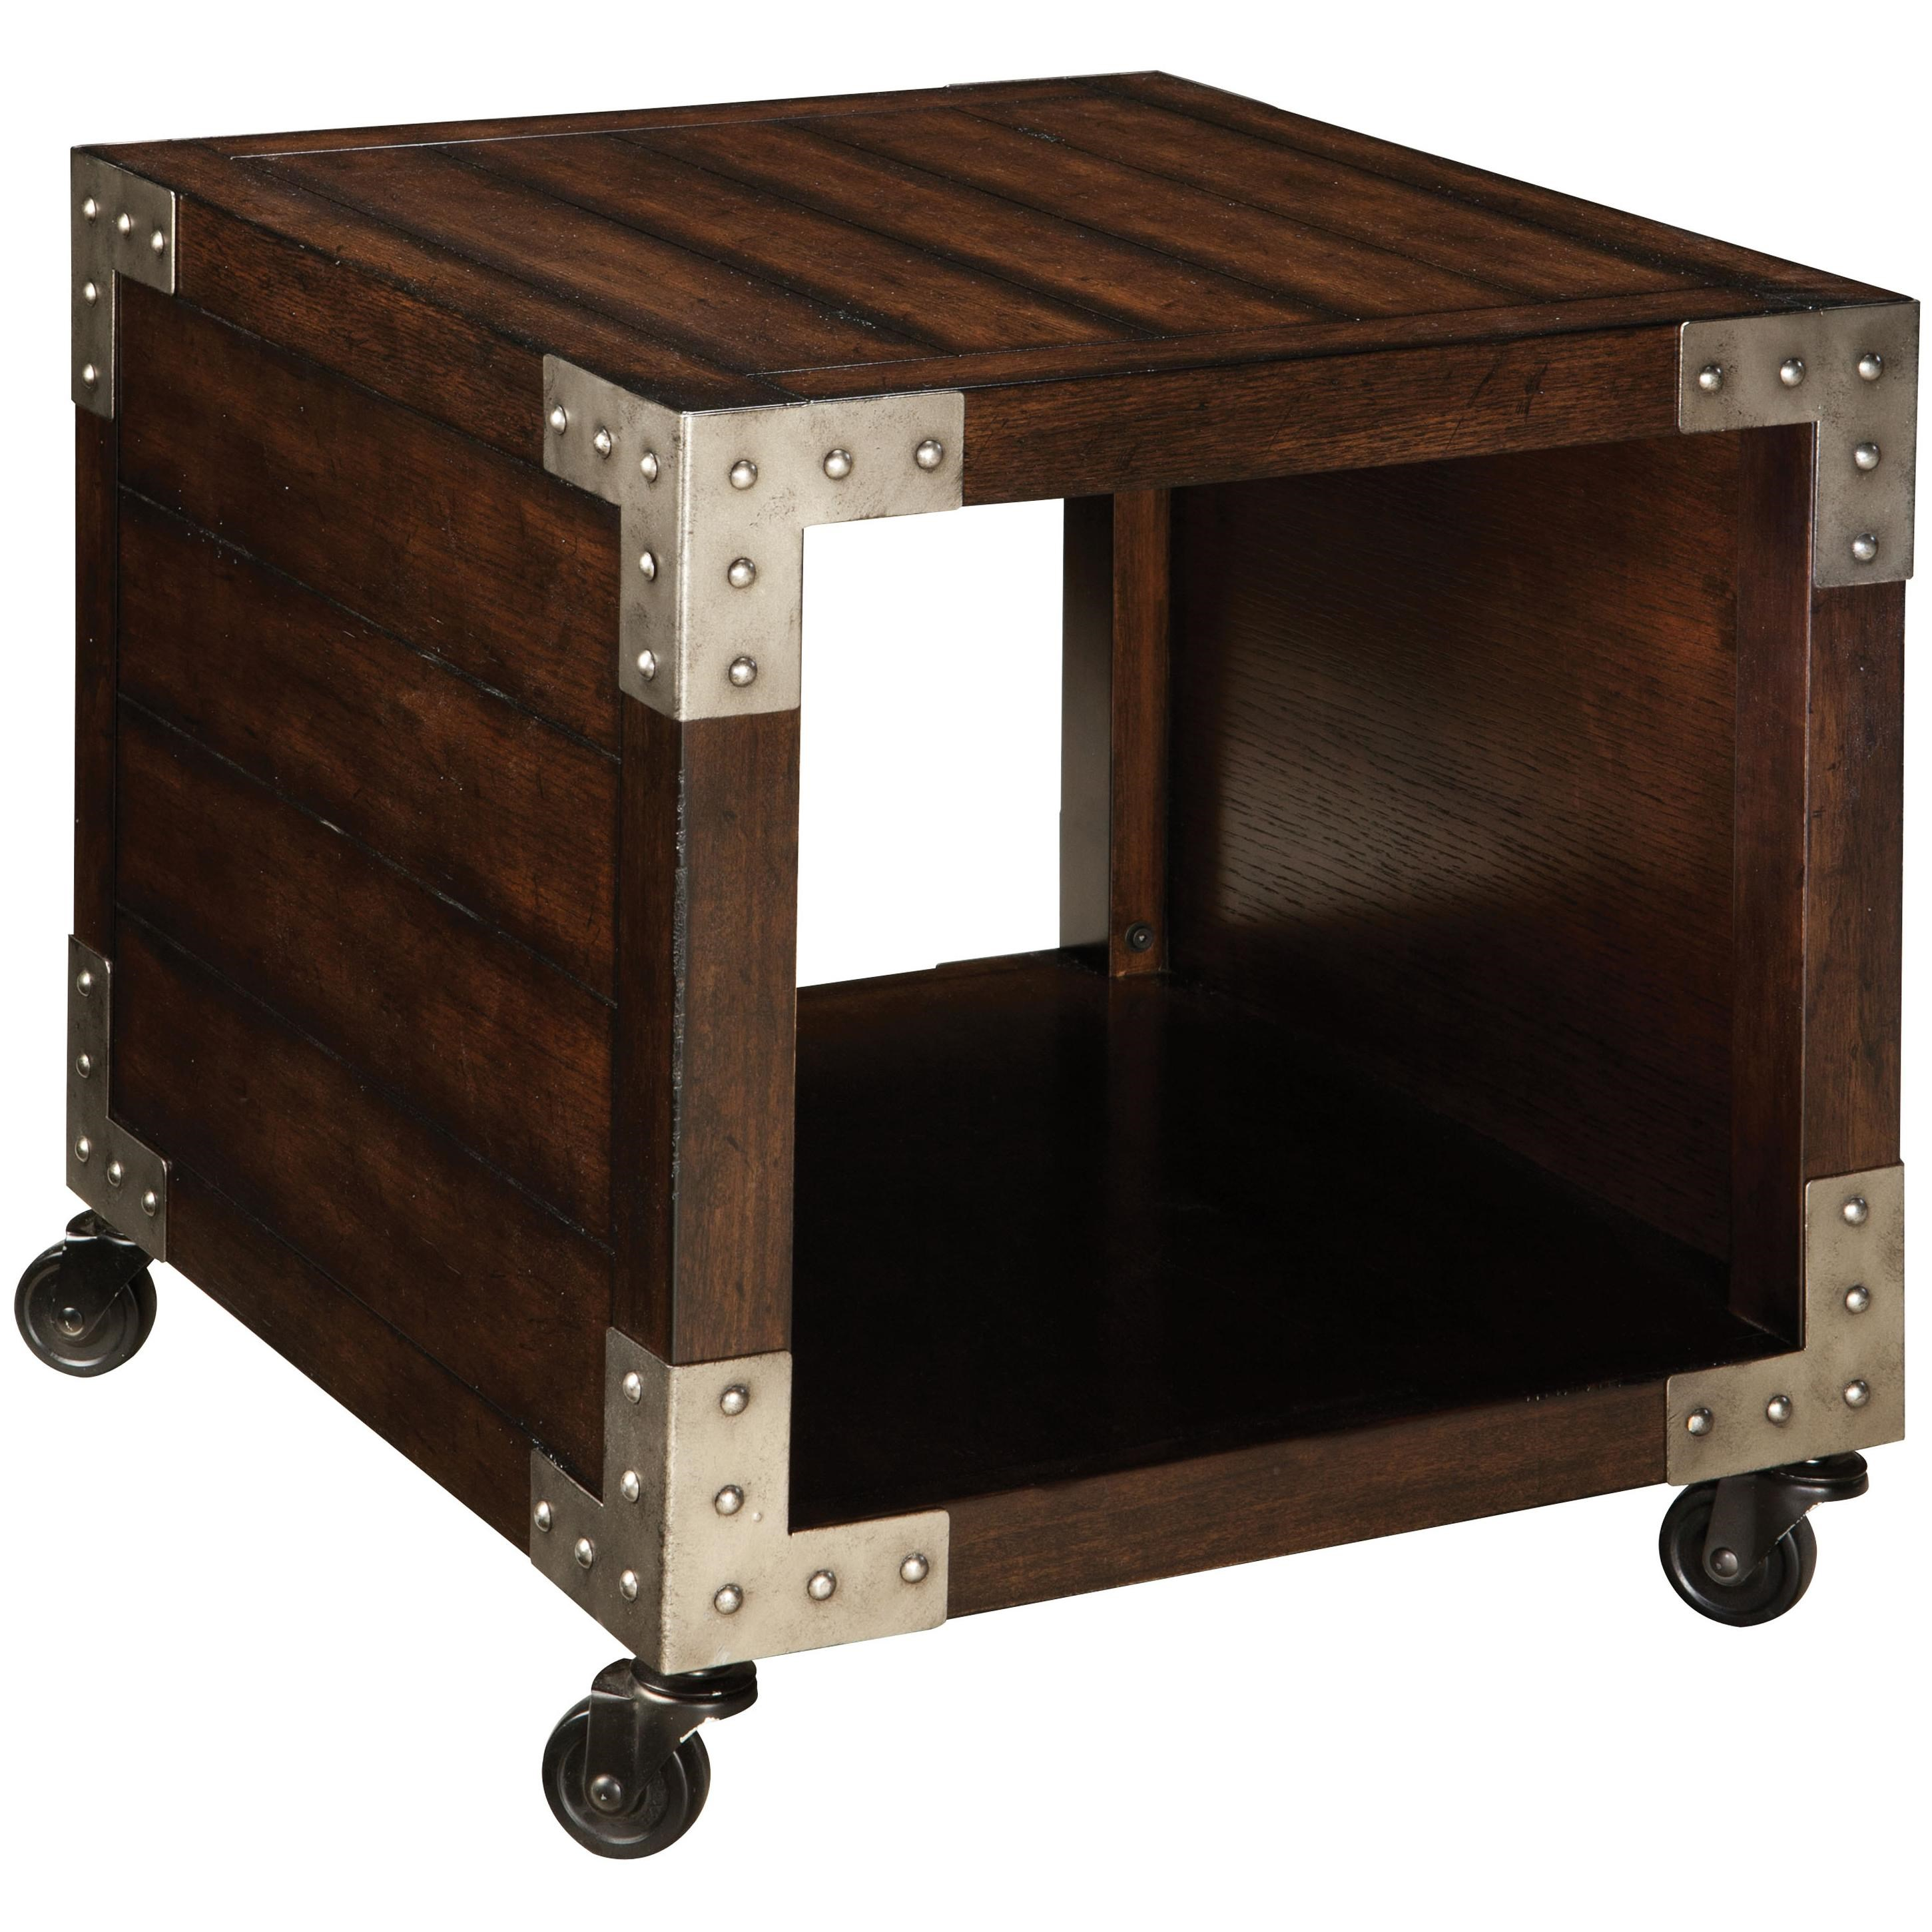 Standard Furniture Sullivan End Table With 1 Compartment And Metal Accents